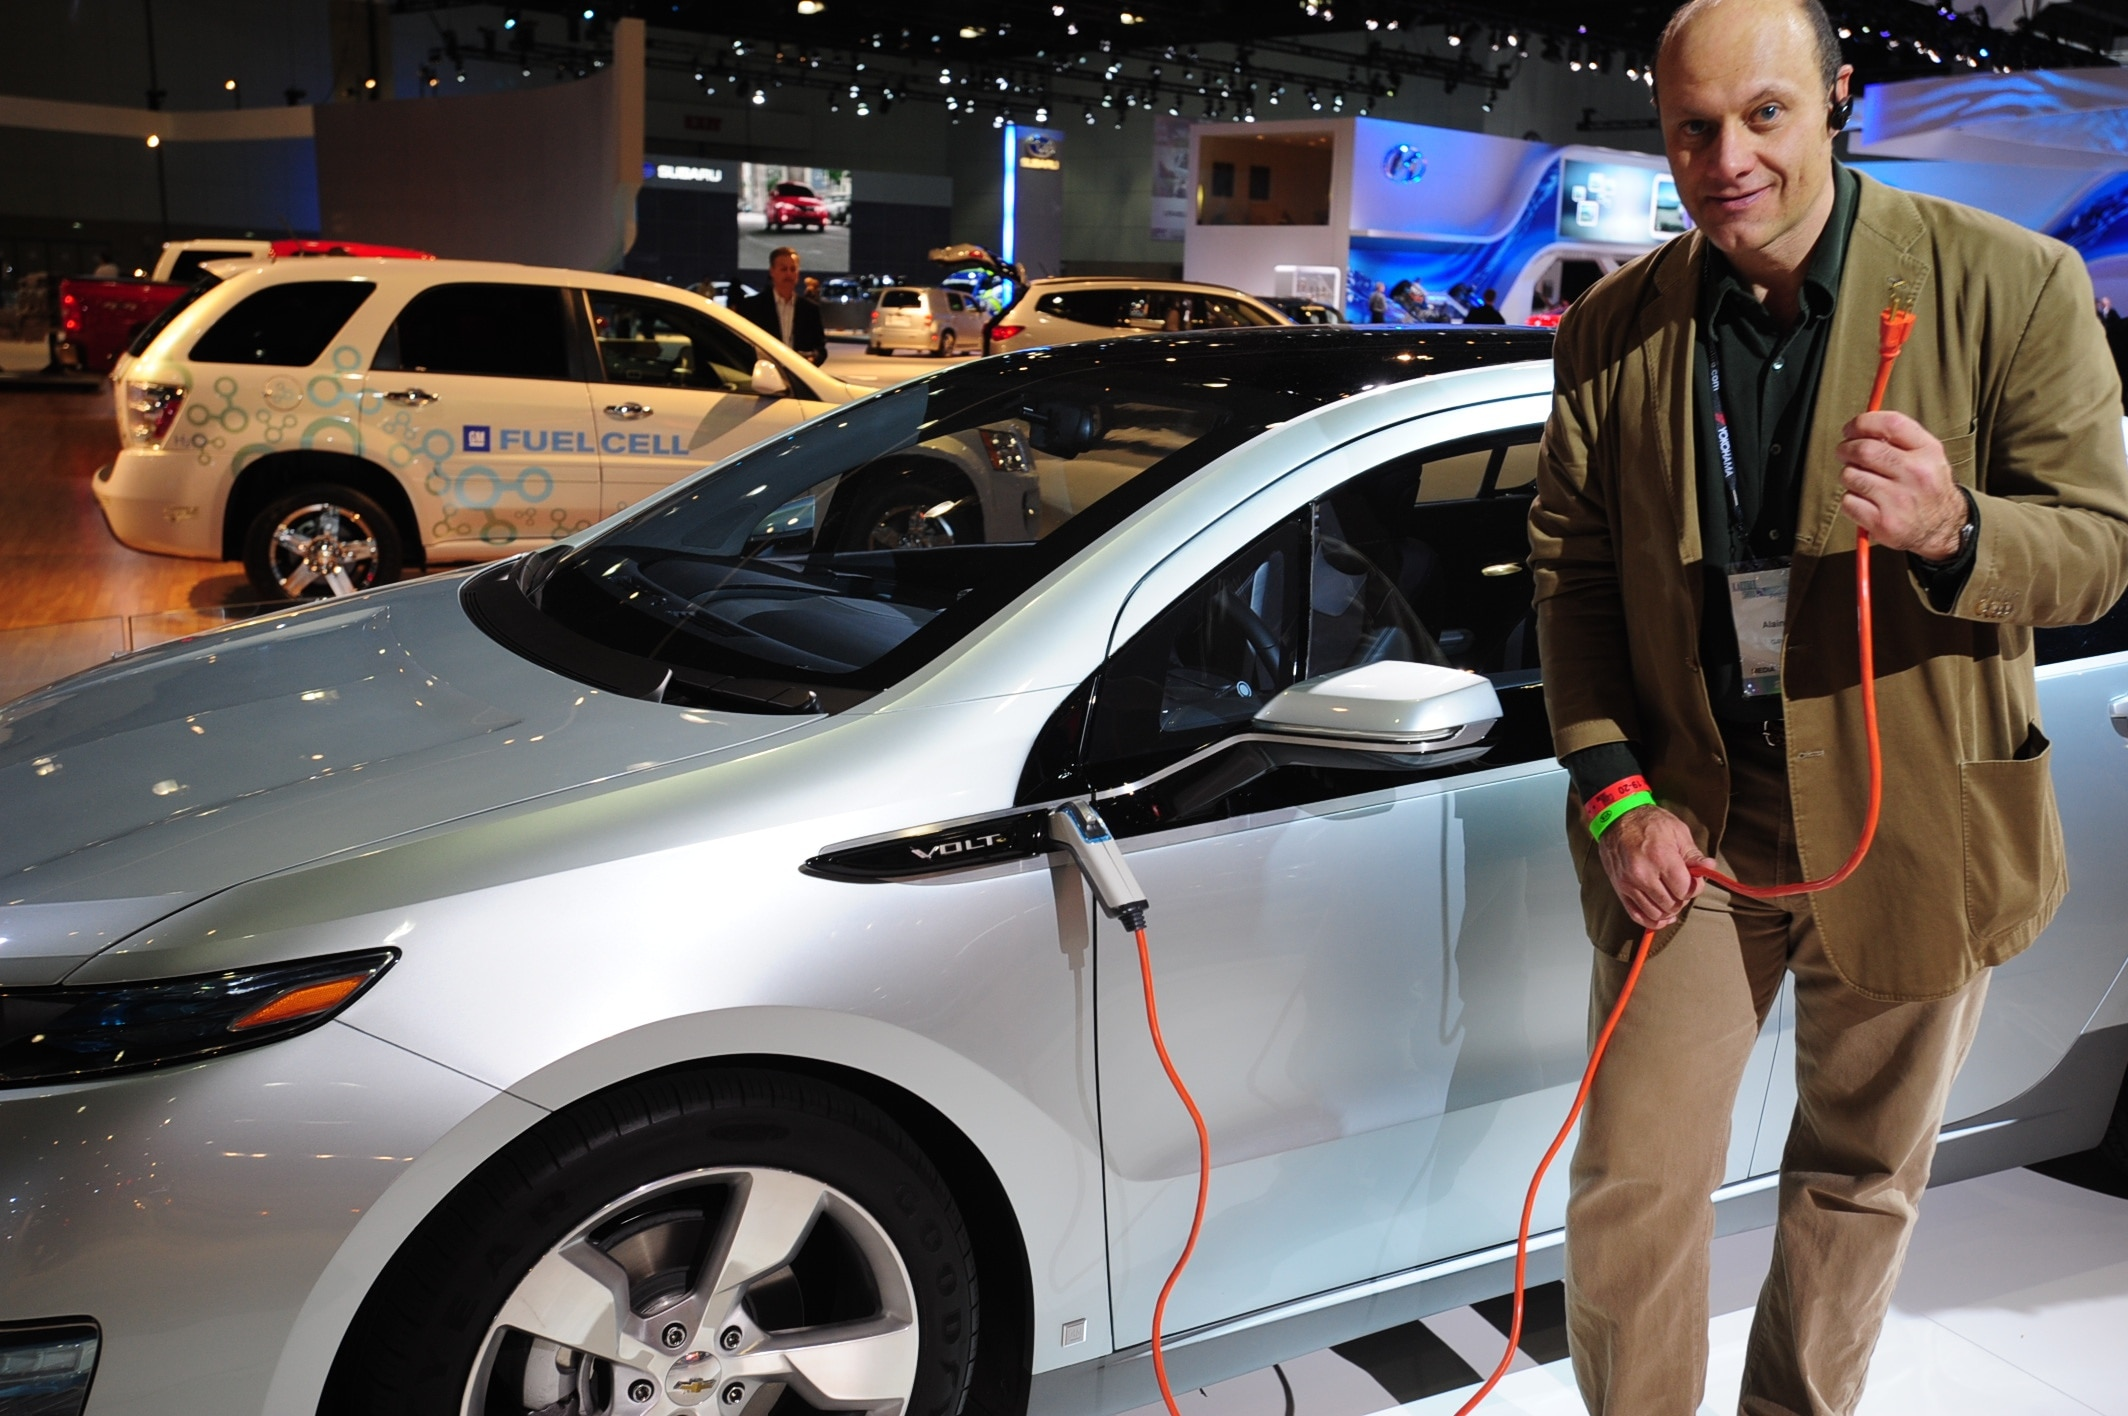 Alain Ot Getting A Closer Look At The Chevrolet Volt Plug In